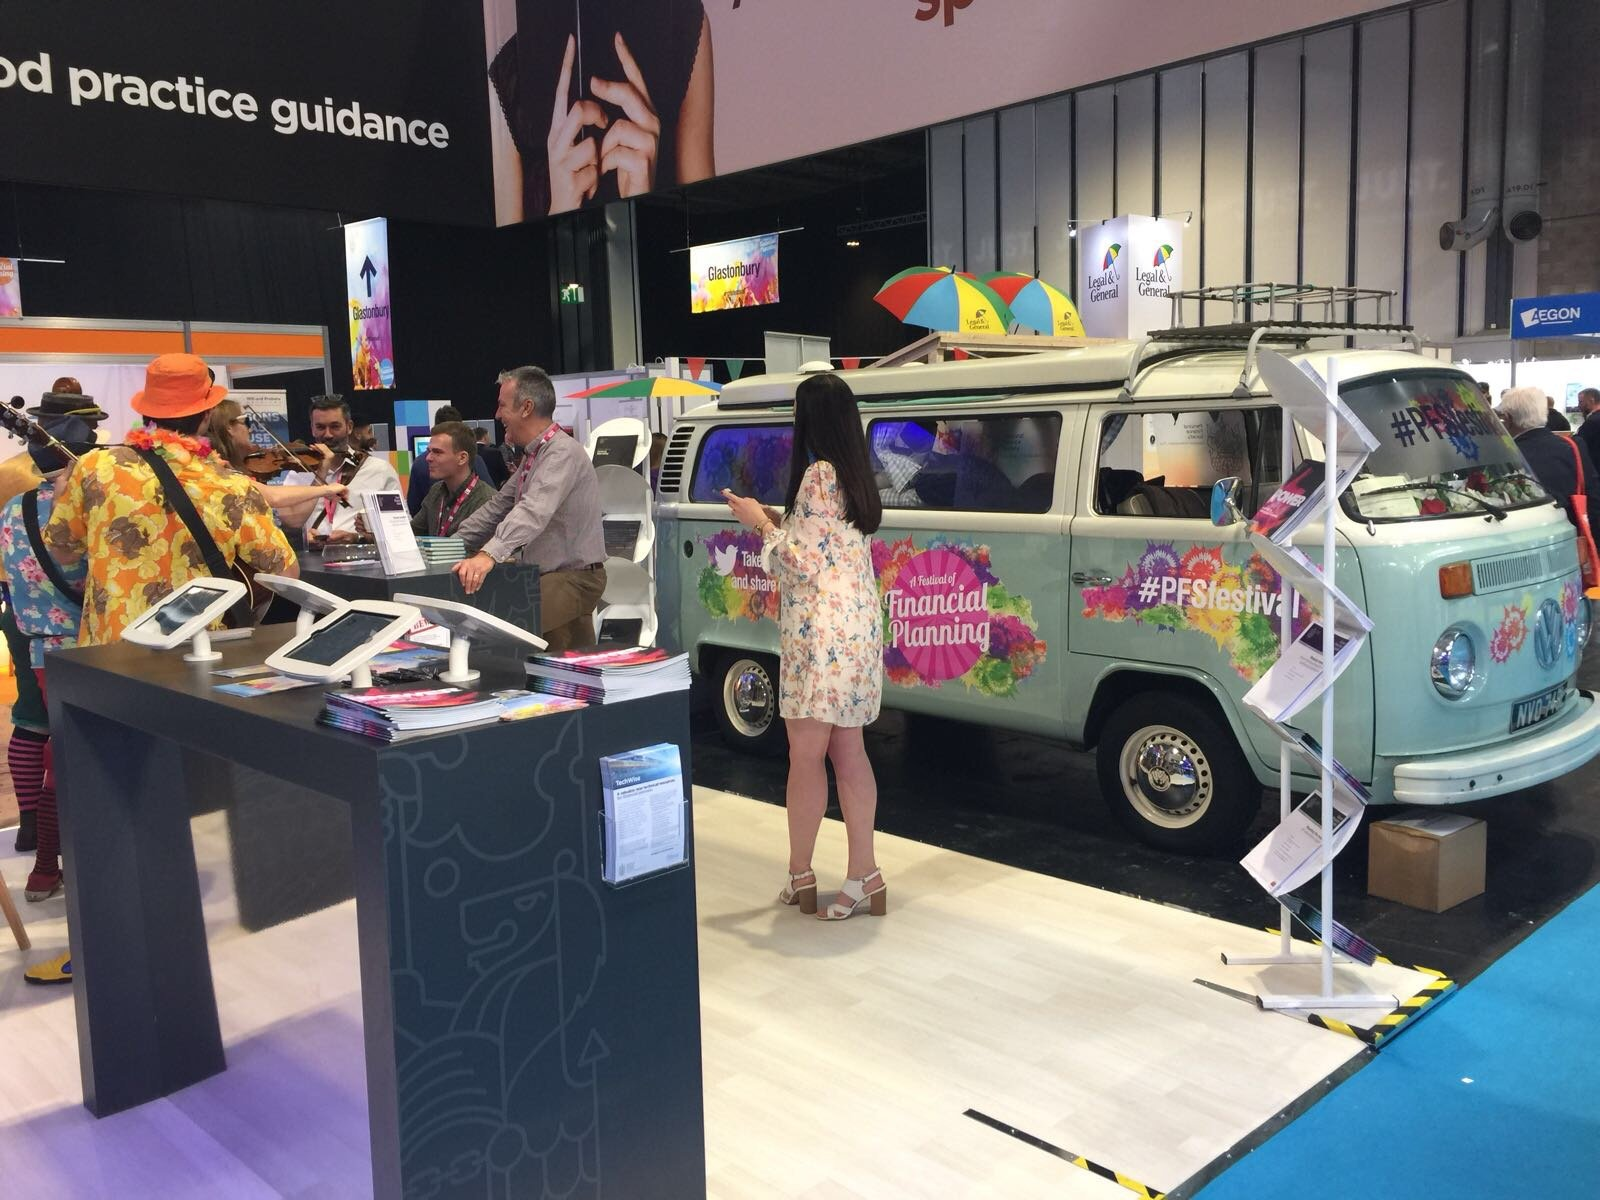 Branded campervan exhibition stand